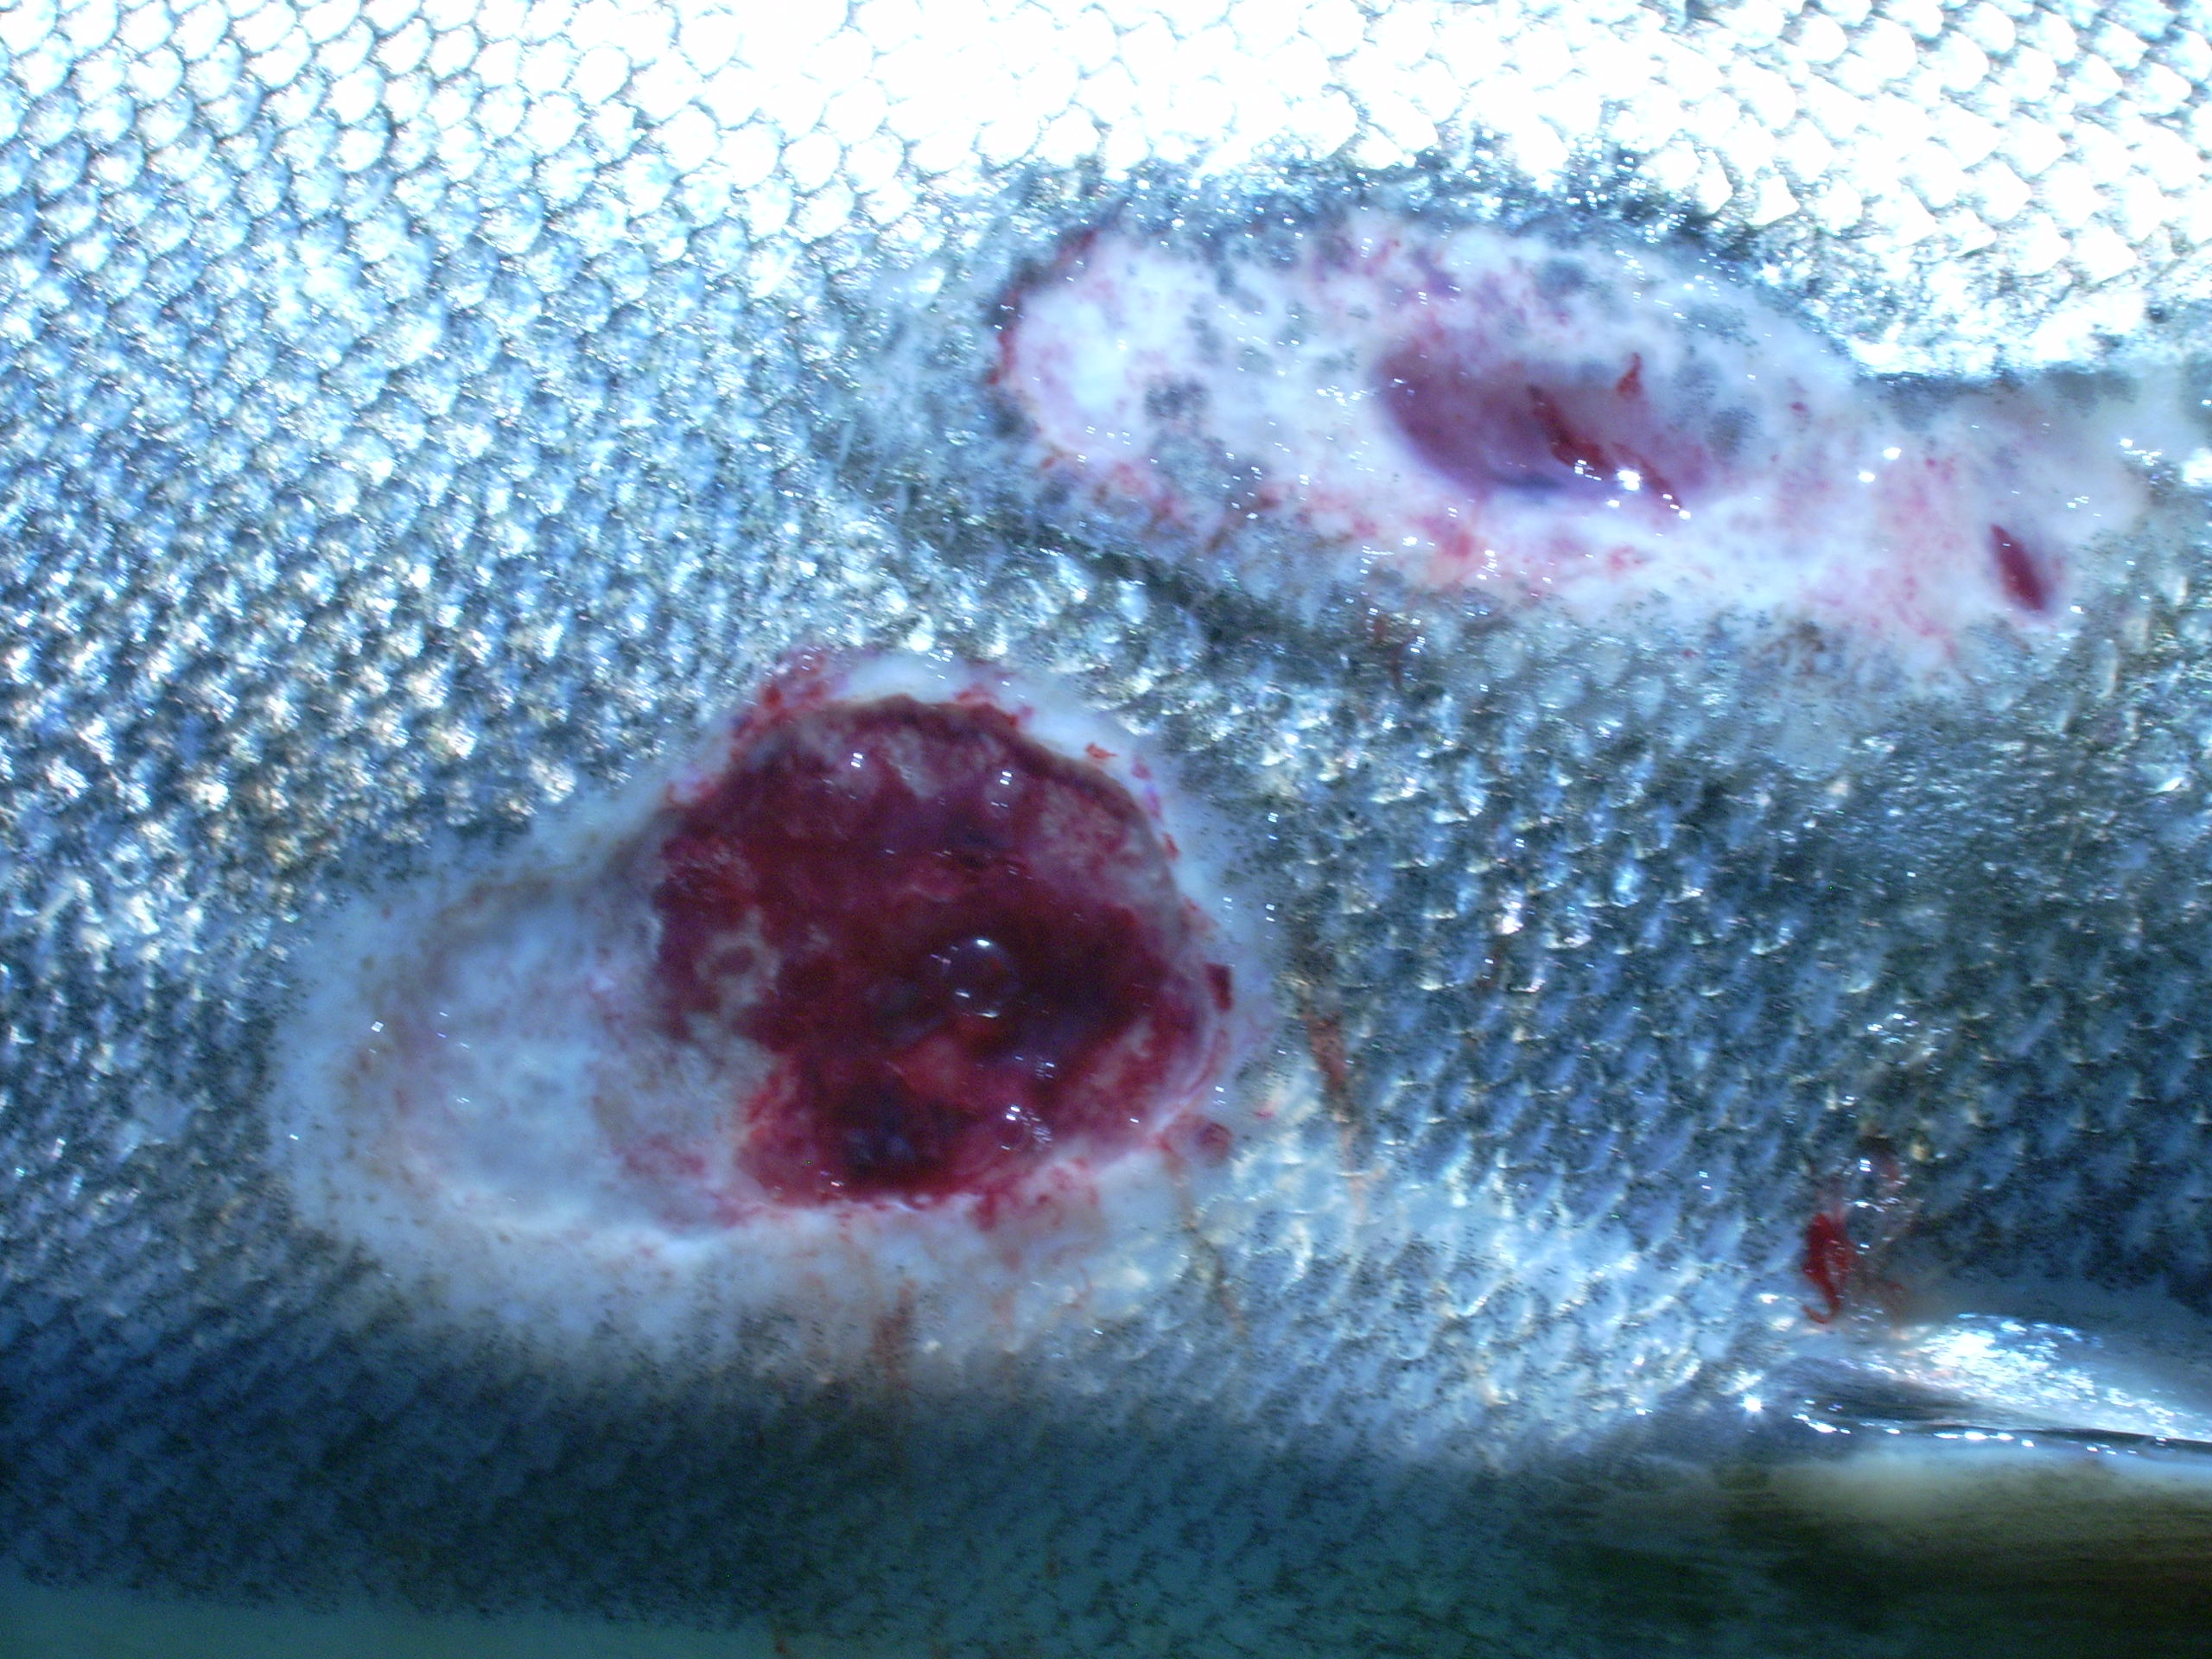 Sea Lamprey Bite File Sea Lamprey Wounds Garden R Jpg Wikimedia Commons